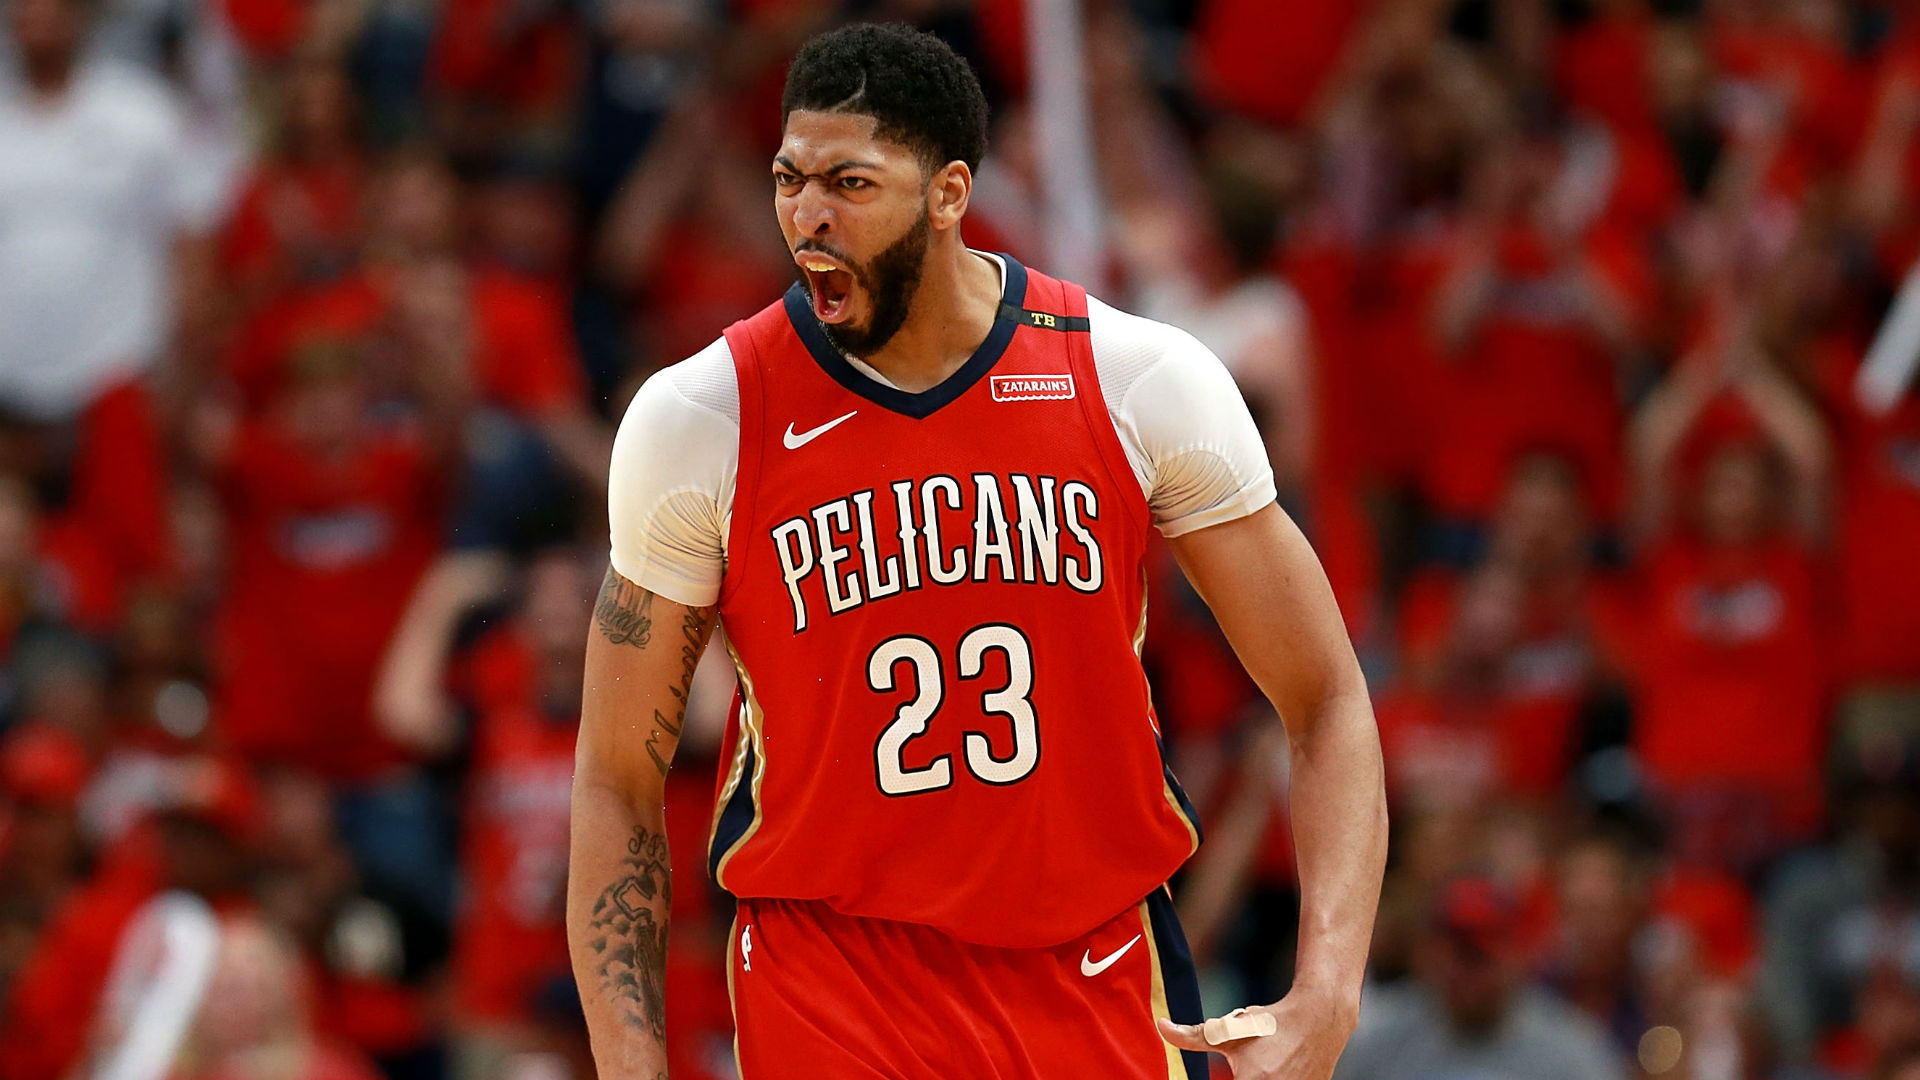 Pelicans Expertly Trolled ESPN's 'Experts' After Eliminating Blazers